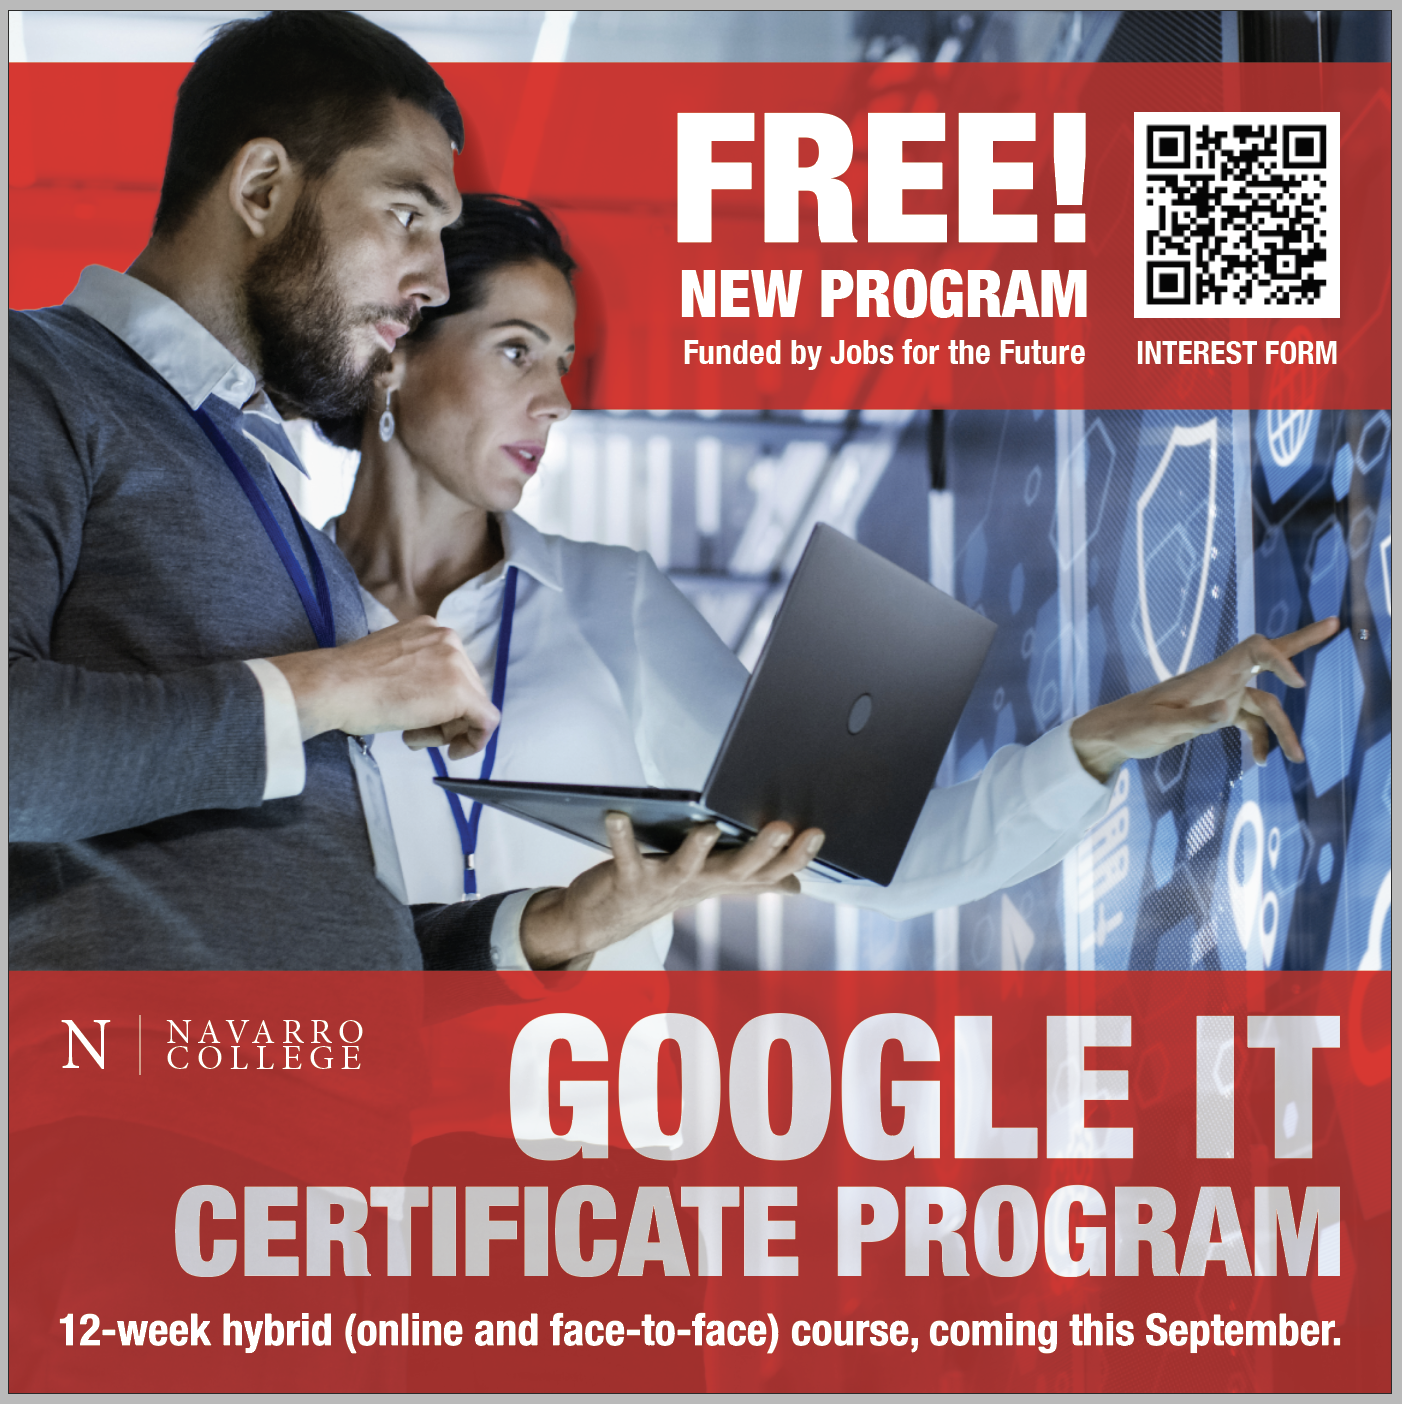 Google IT Certification Program